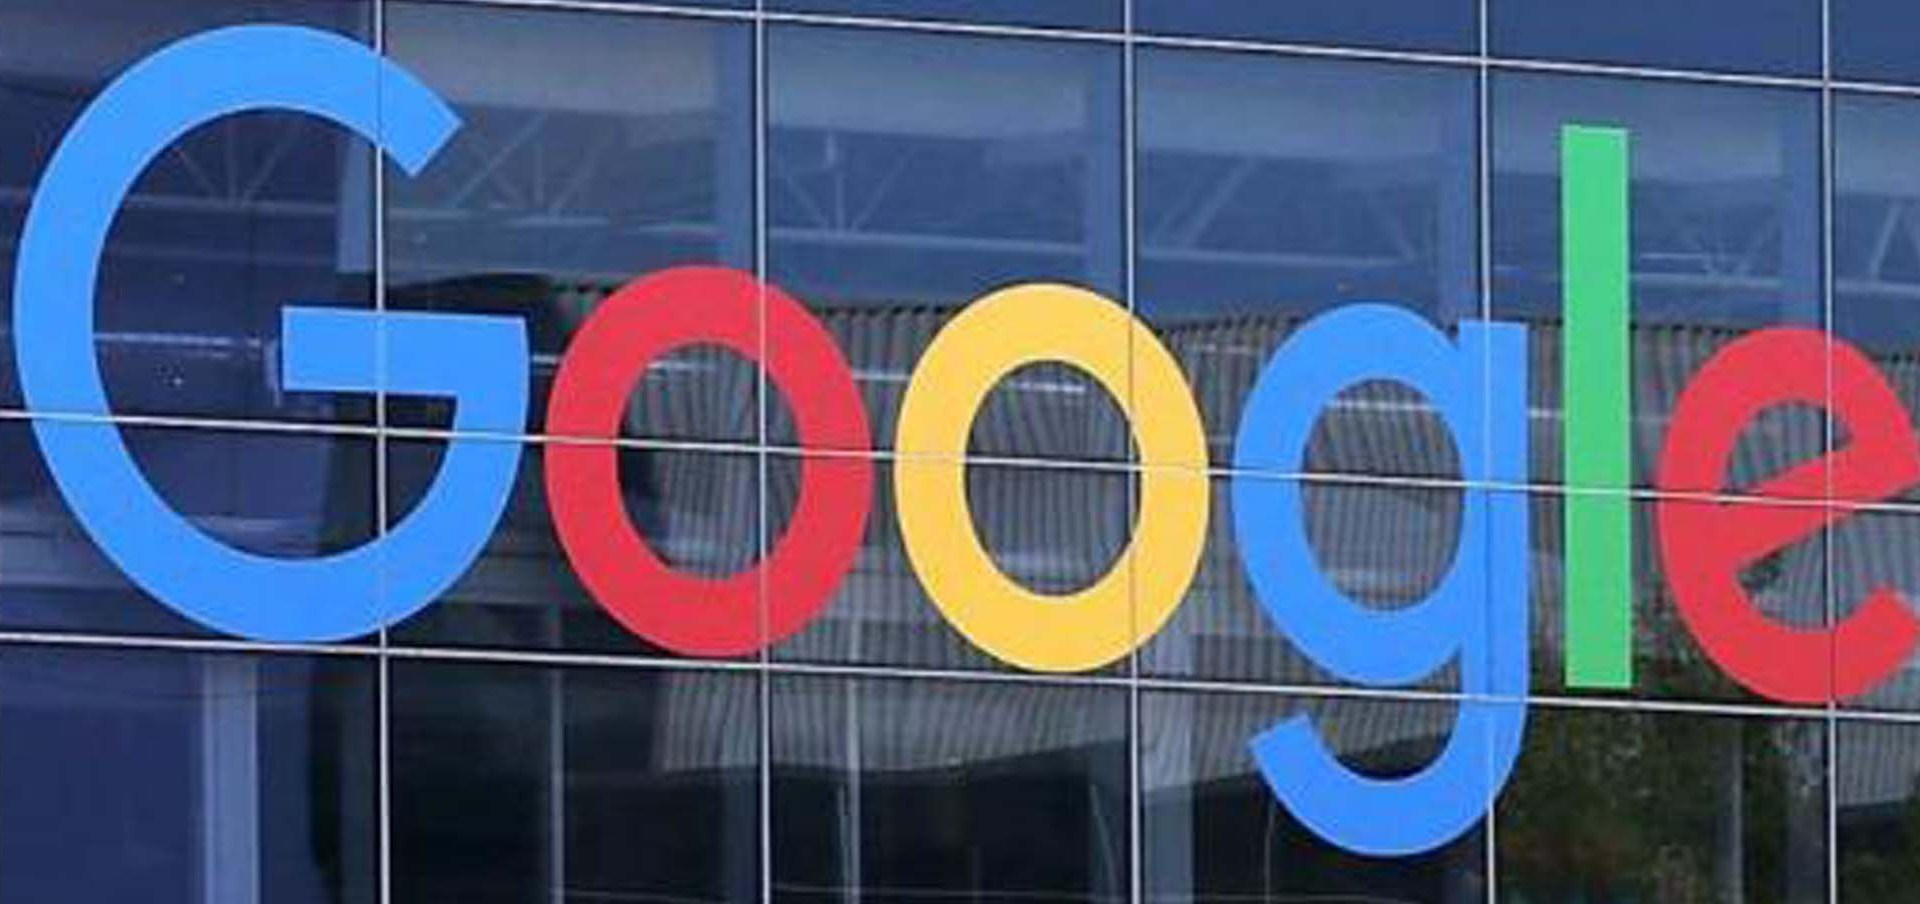 AI in Africa: Google AI Accra is Finally Open For Business